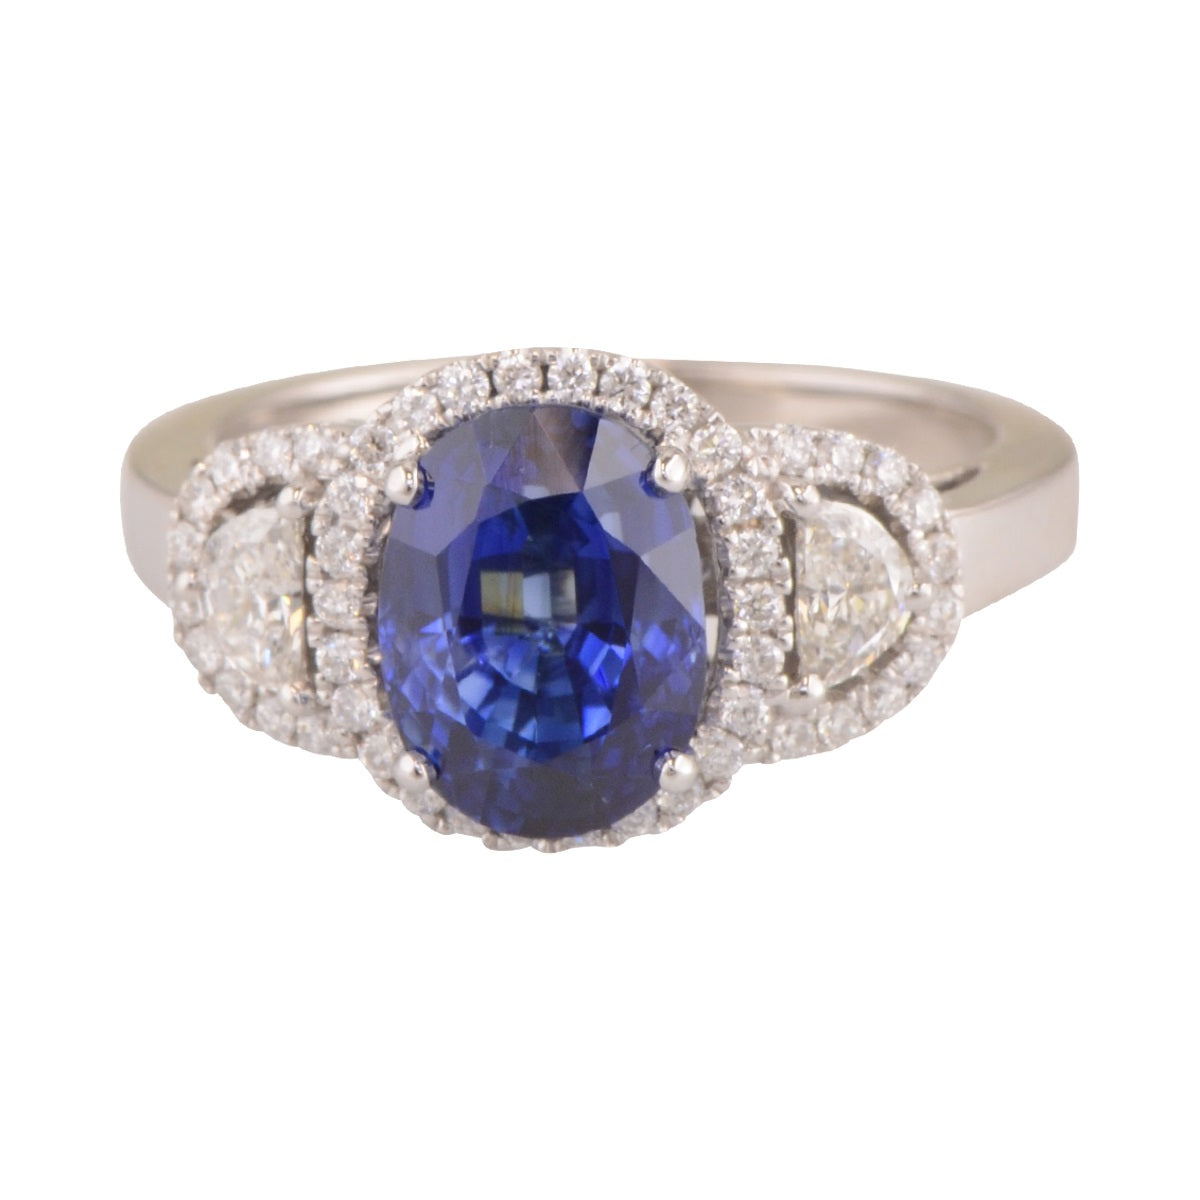 'Blue Moon' sapphire and diamond halo ring.